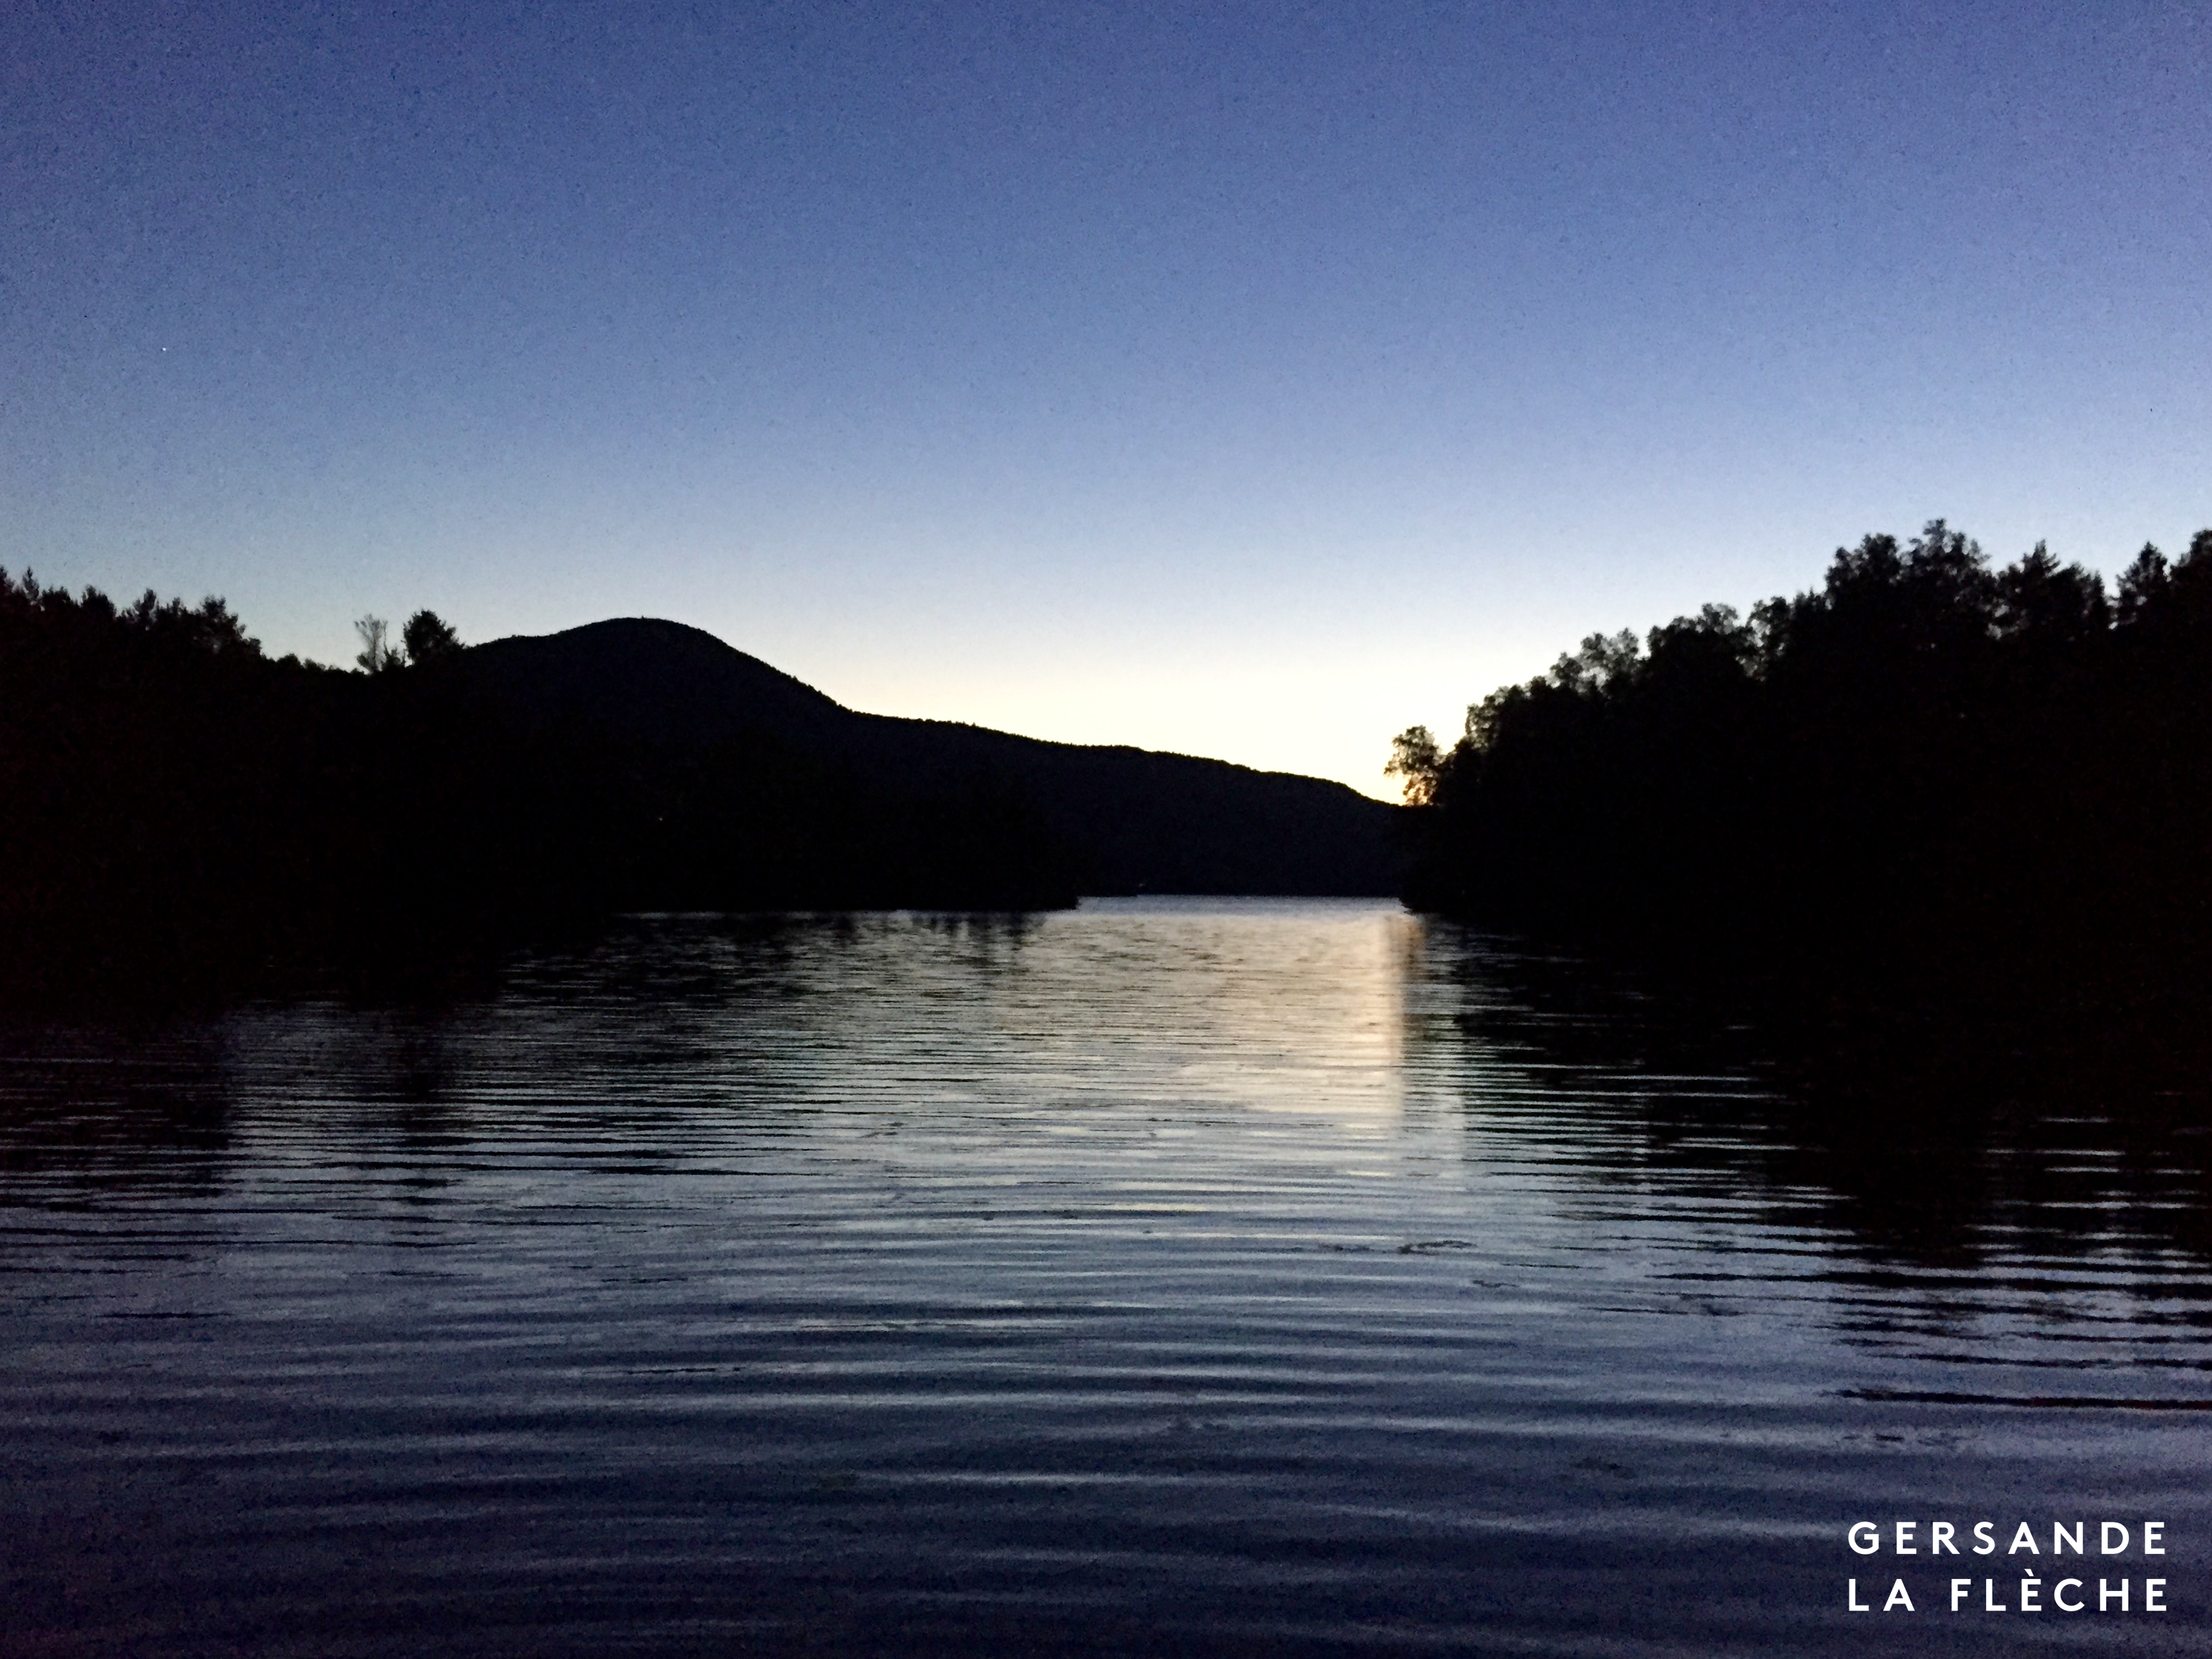 A photo of a mountain and a lake after sunset, with the silhouette of the forest reflected on the still silver-bright surface of the water.